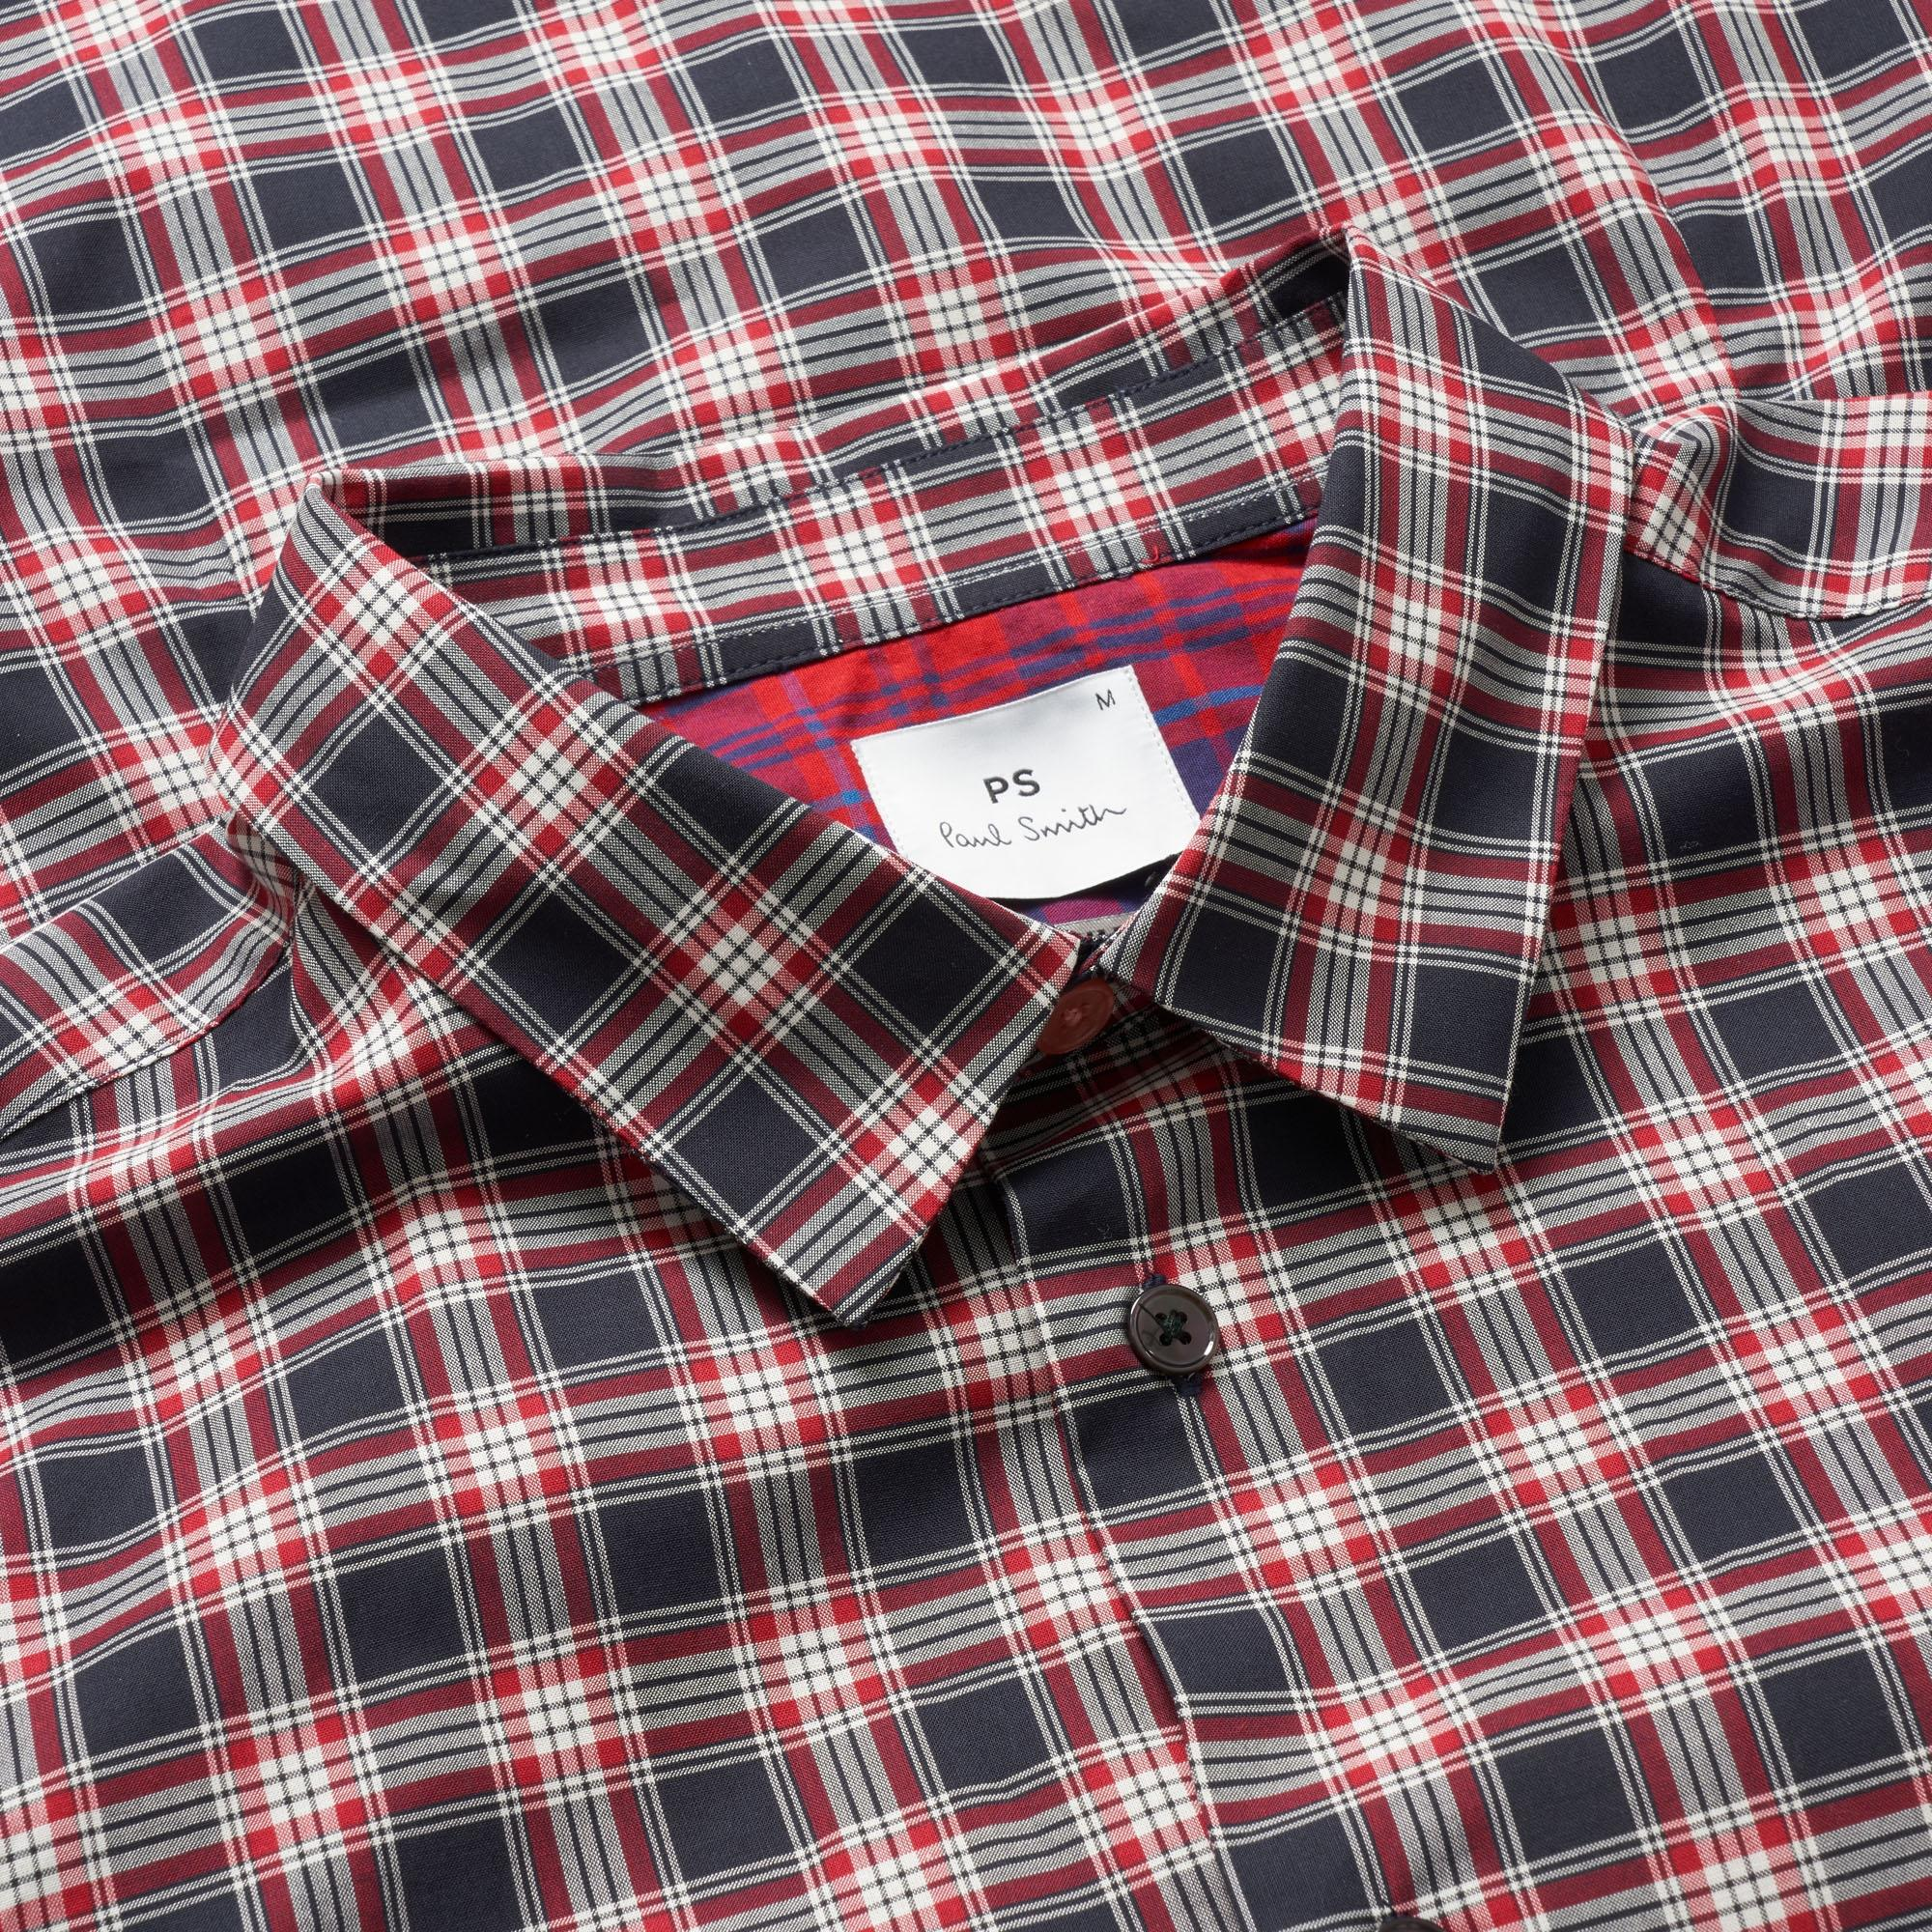 004240abda9f1b PS by Paul Smith - Red Check Shirt for Men - Lyst. View fullscreen